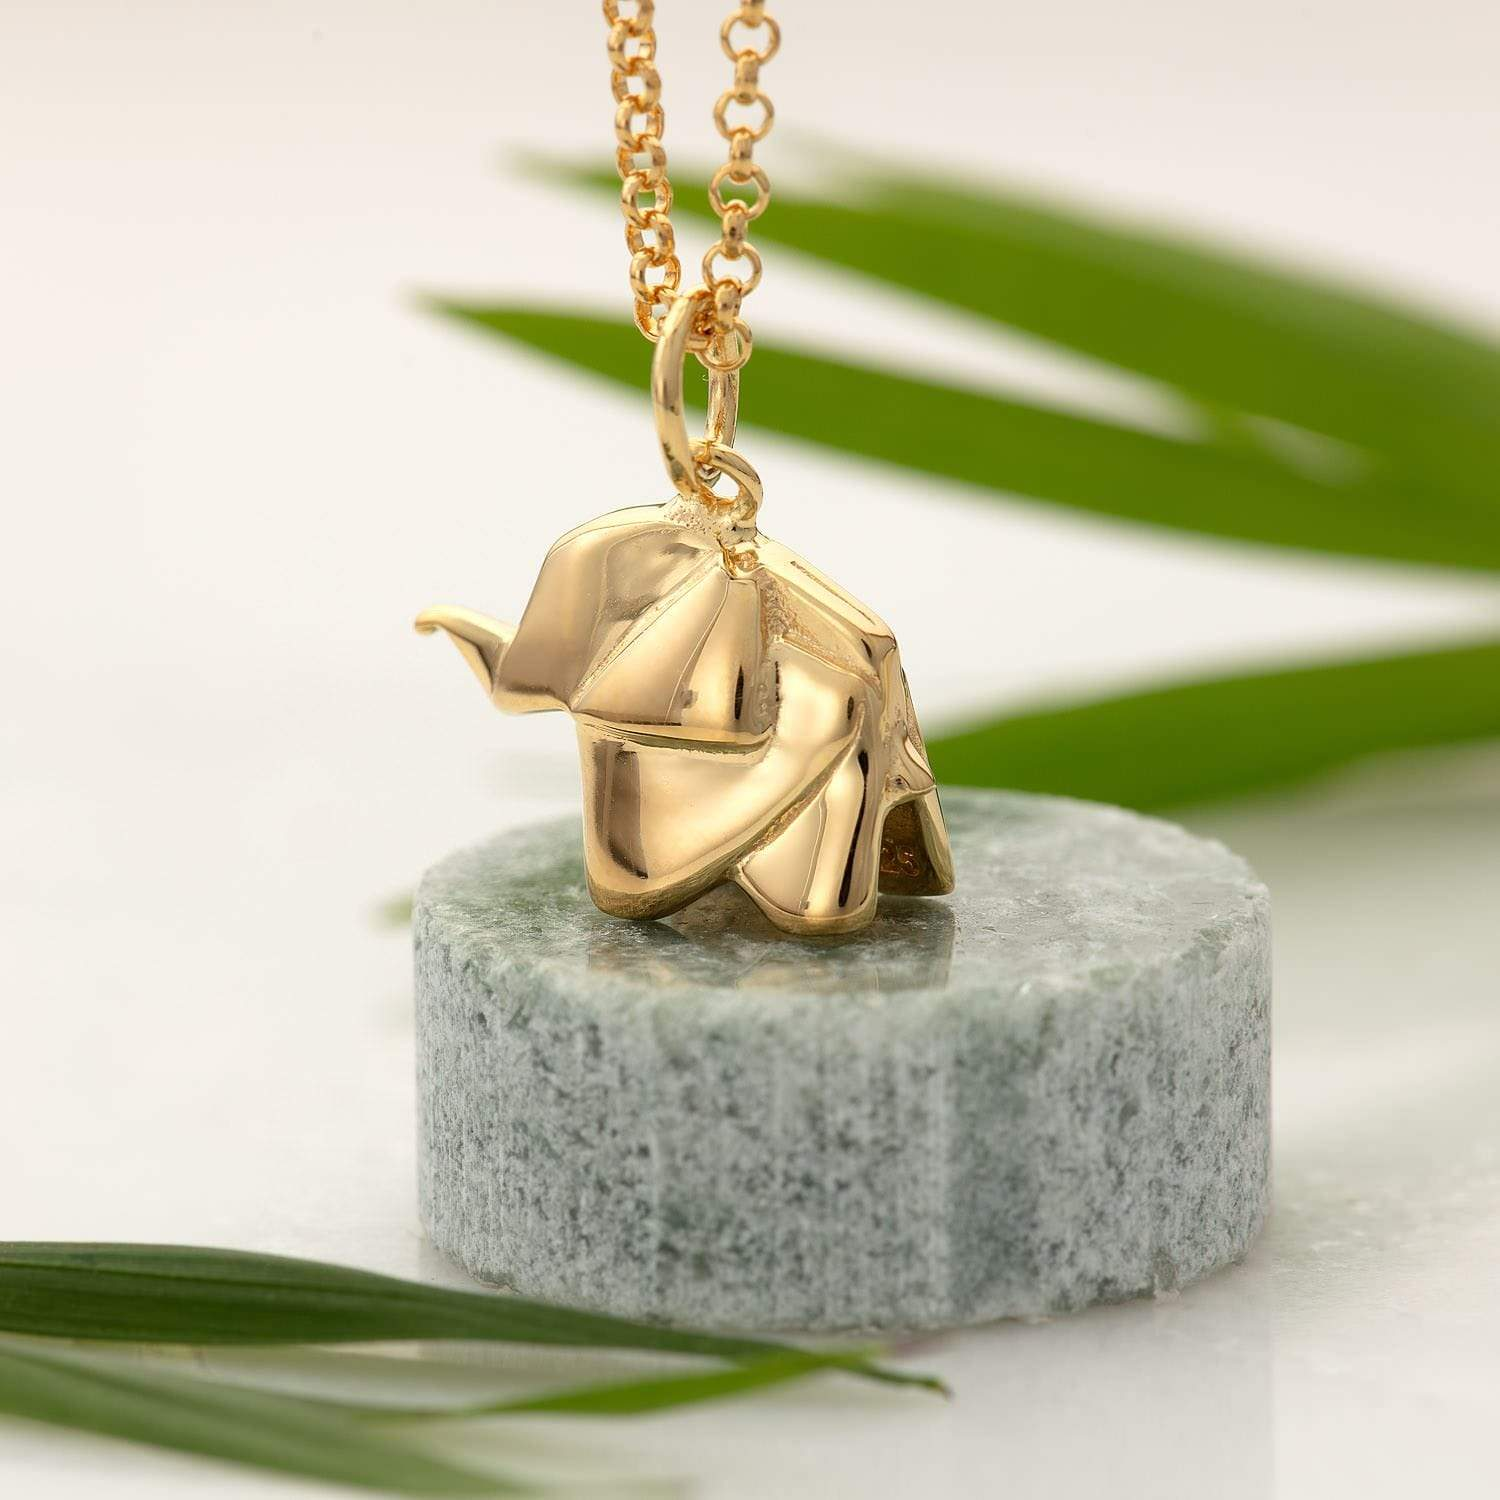 Personalised Gold Plated Origami Elephant Necklace - Lily Charmed